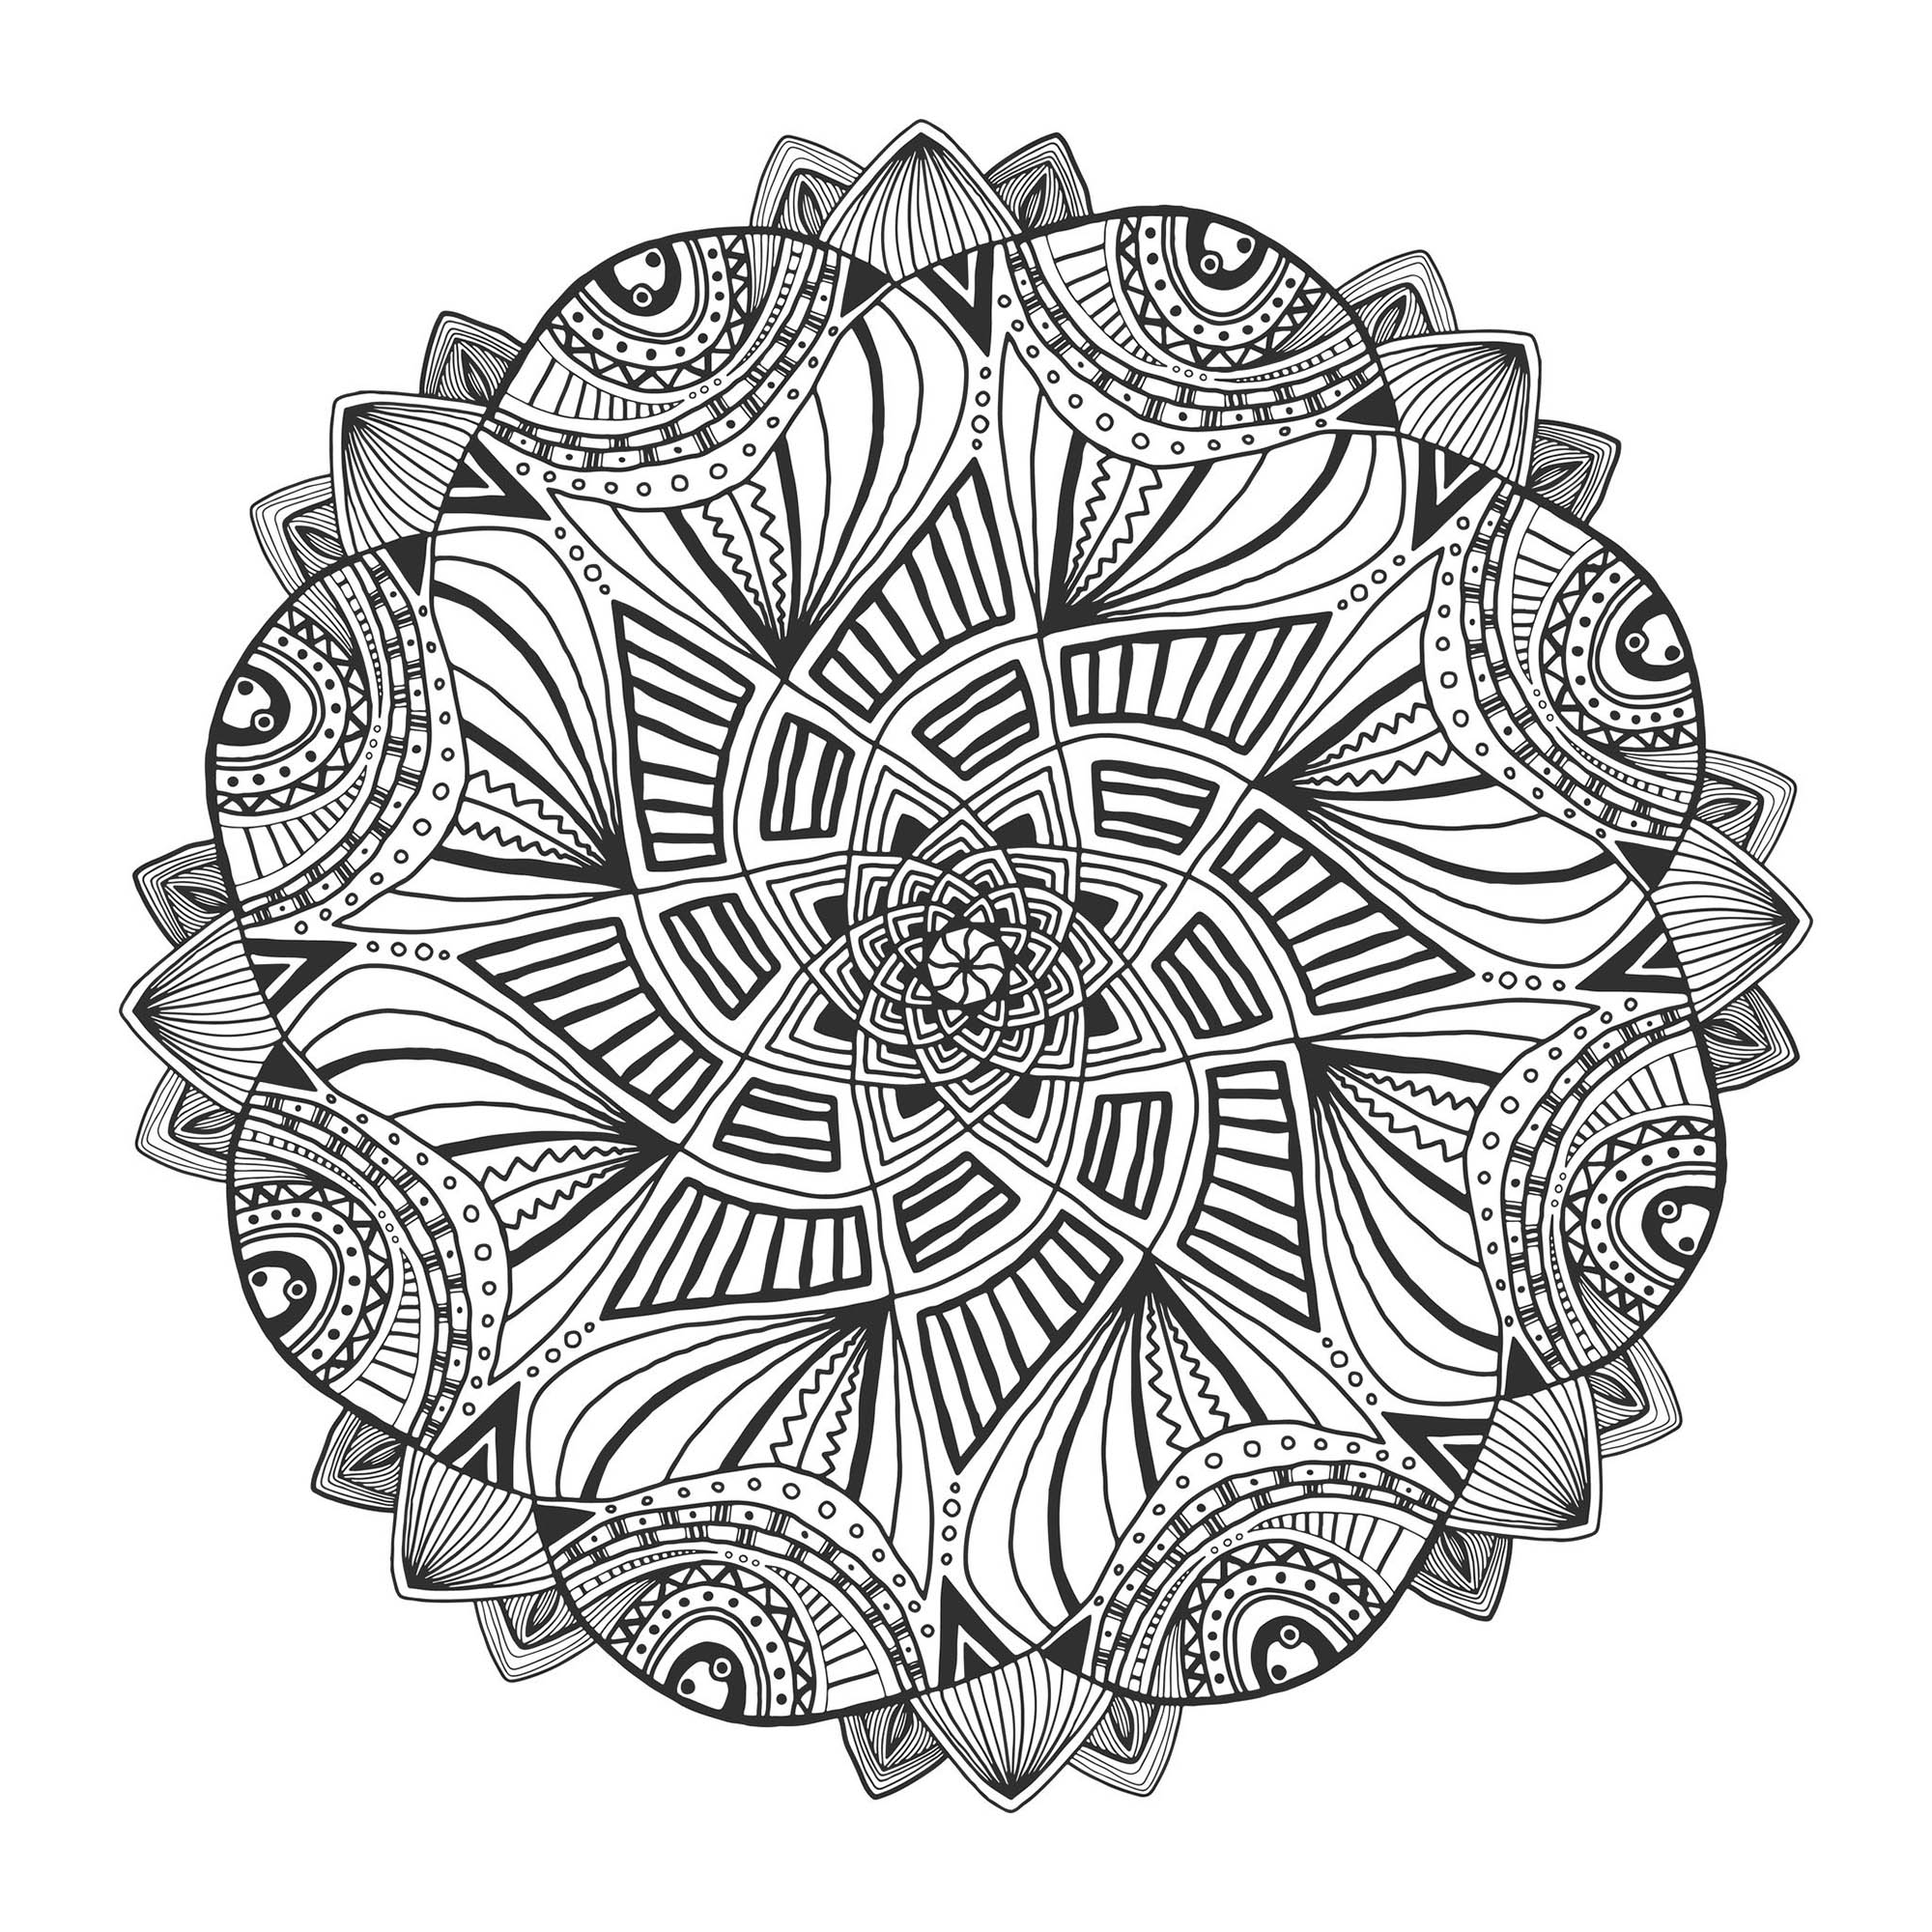 mandalas to color for adults 63 adult coloring pages to nourish your mental visual mandalas adults for color to